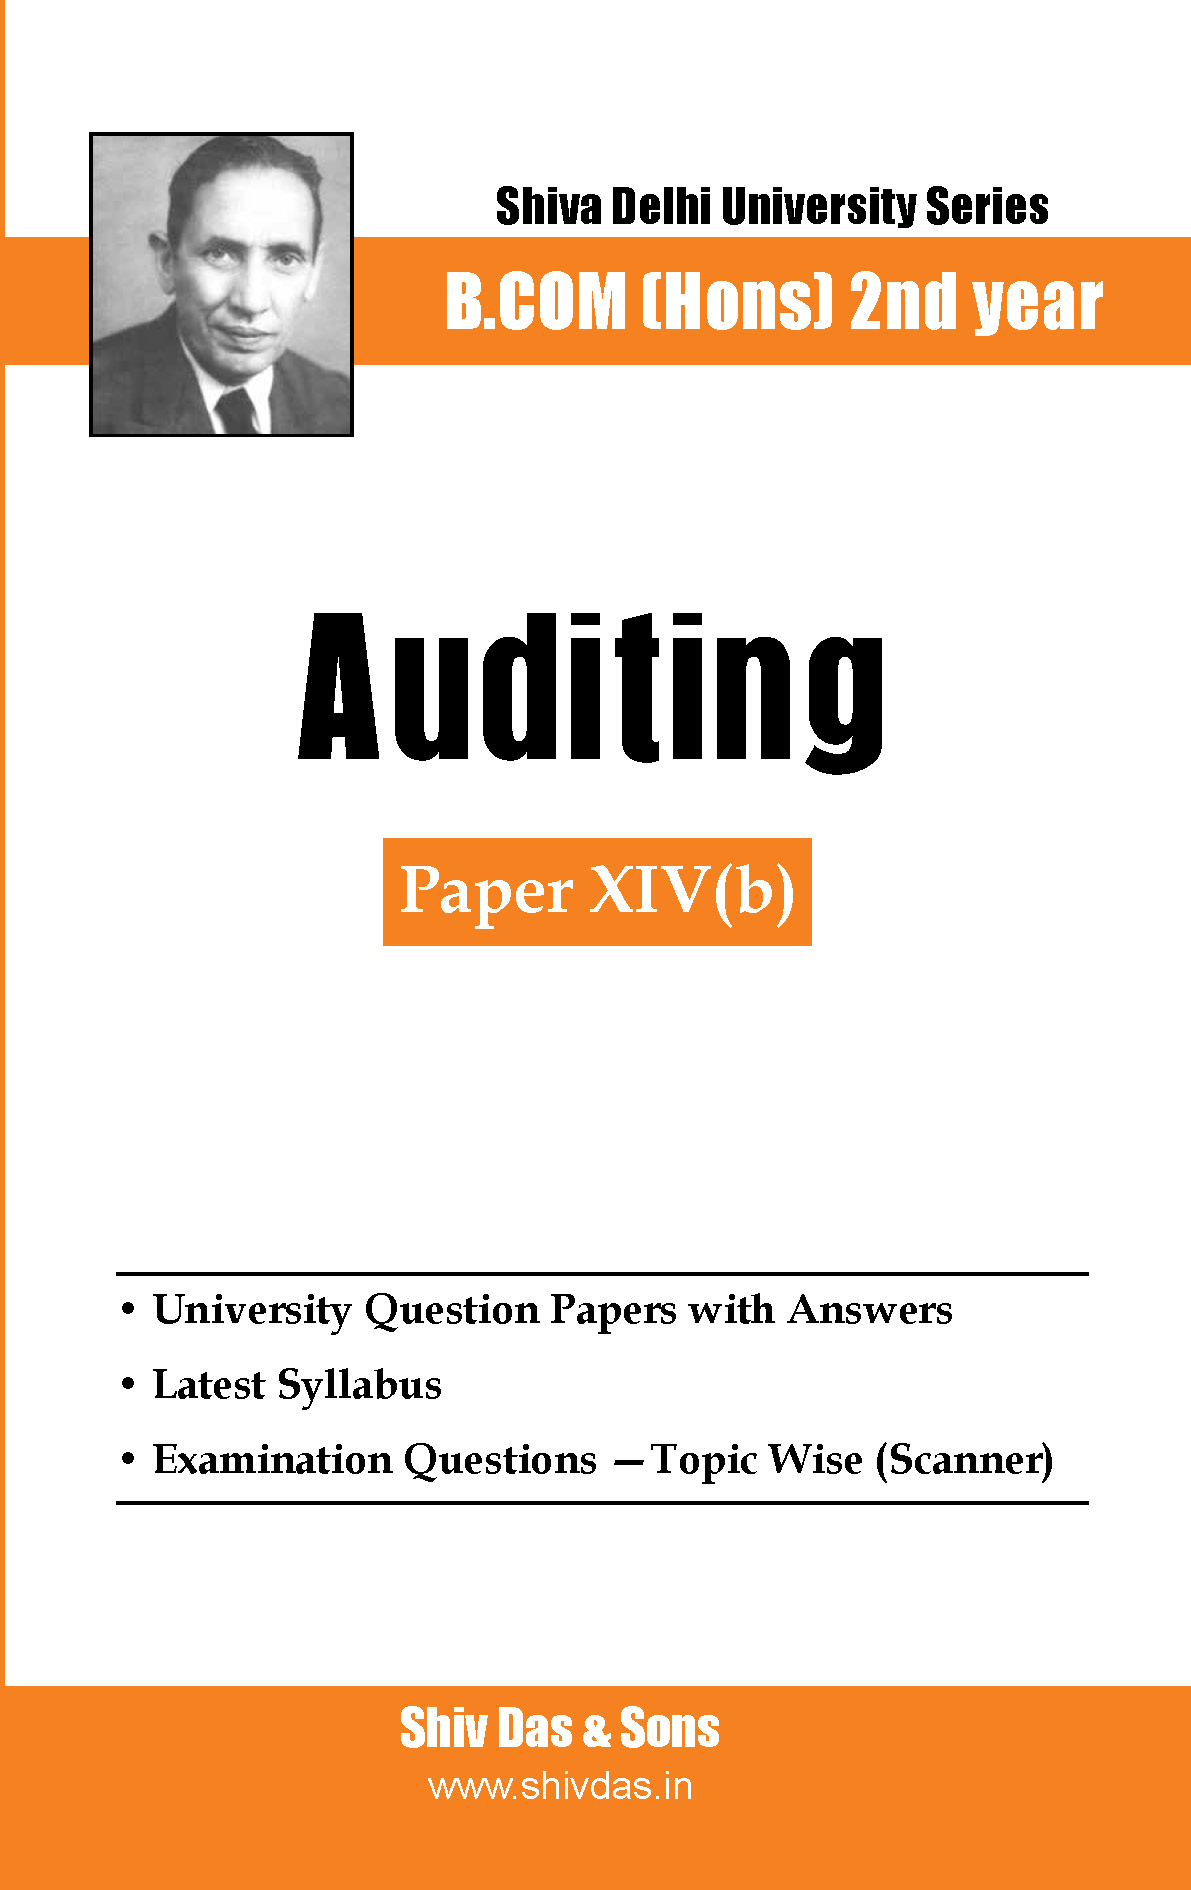 B.Com Hons-SOL/External-2nd Year-Auditing-Shiv Das-Delhi University Series